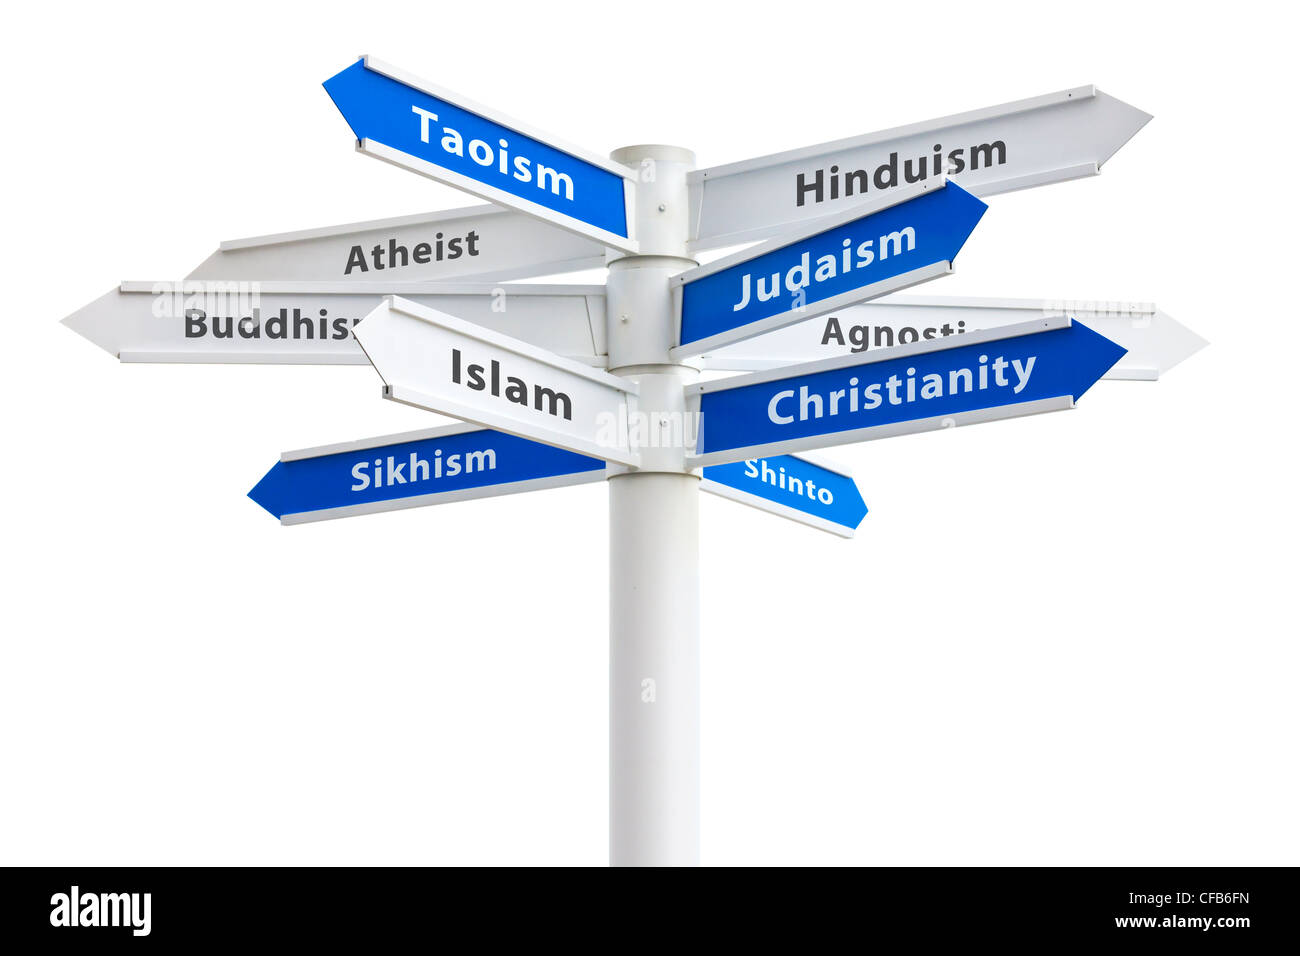 Major religions of the world on a crossroads sign. Featuring: Christianity, Islam and Judaism - Stock Image